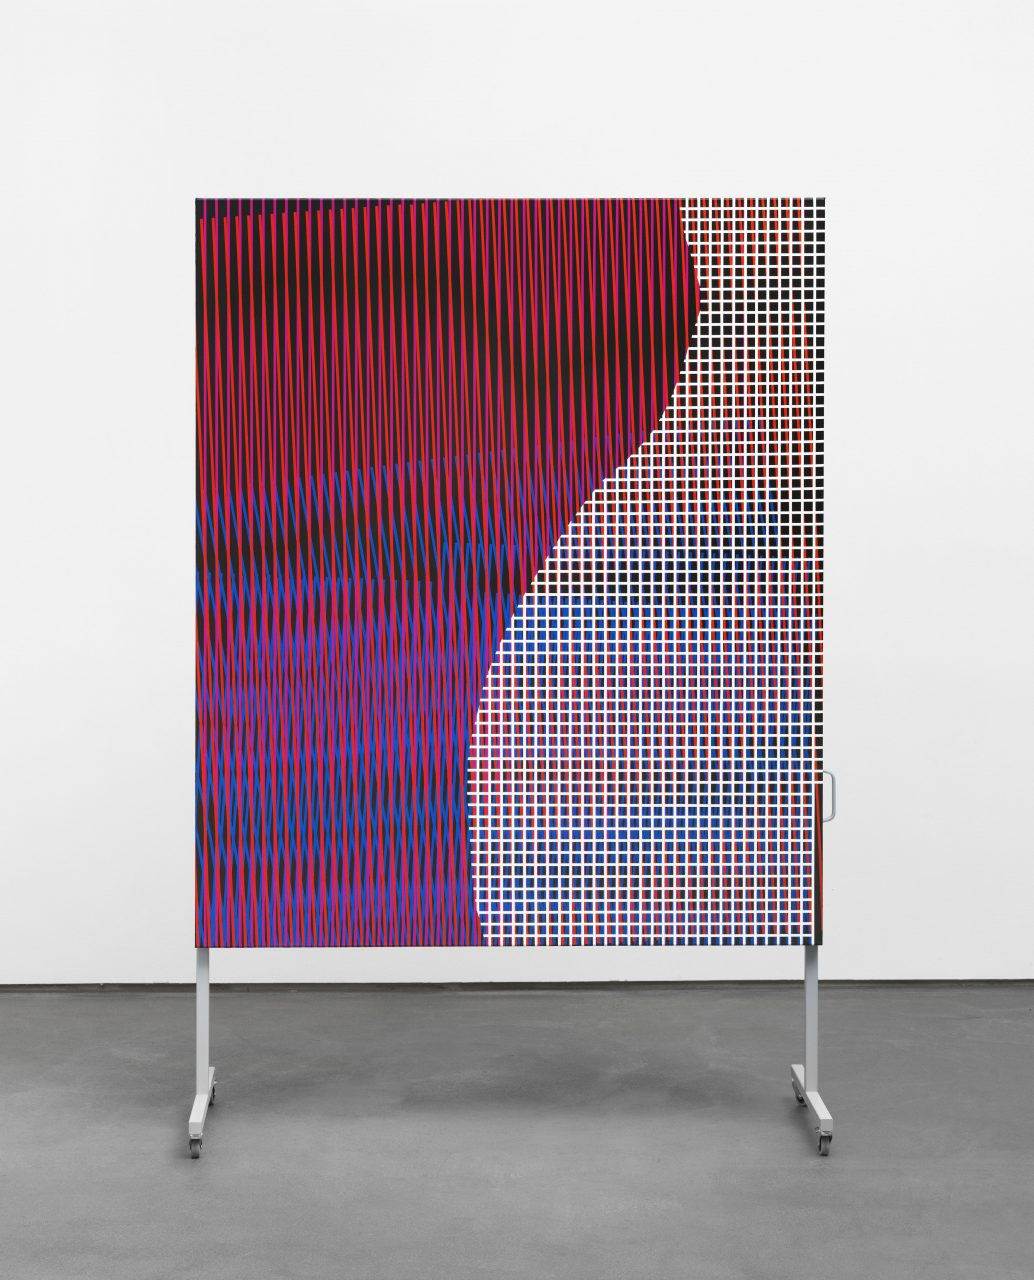 untitled (body color space), 2017 /// acrylic on canvas on metal rack /// 245 x 155 x 60 cm